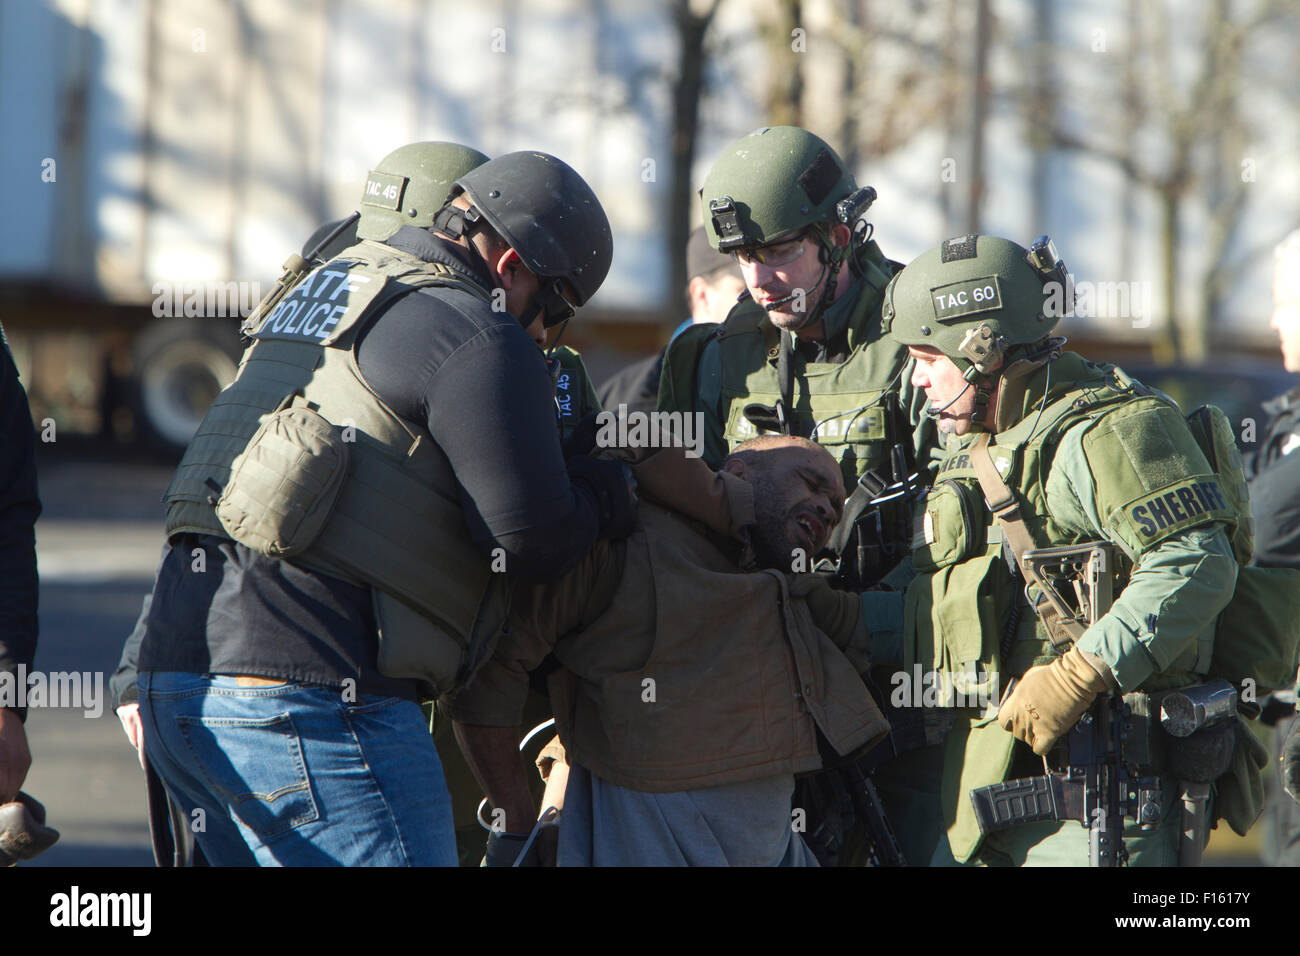 King Of Swat Stock Photos Images Alamy Store Law Enforcement Activity Burien Washington Standoff At Sporting Goods December 2